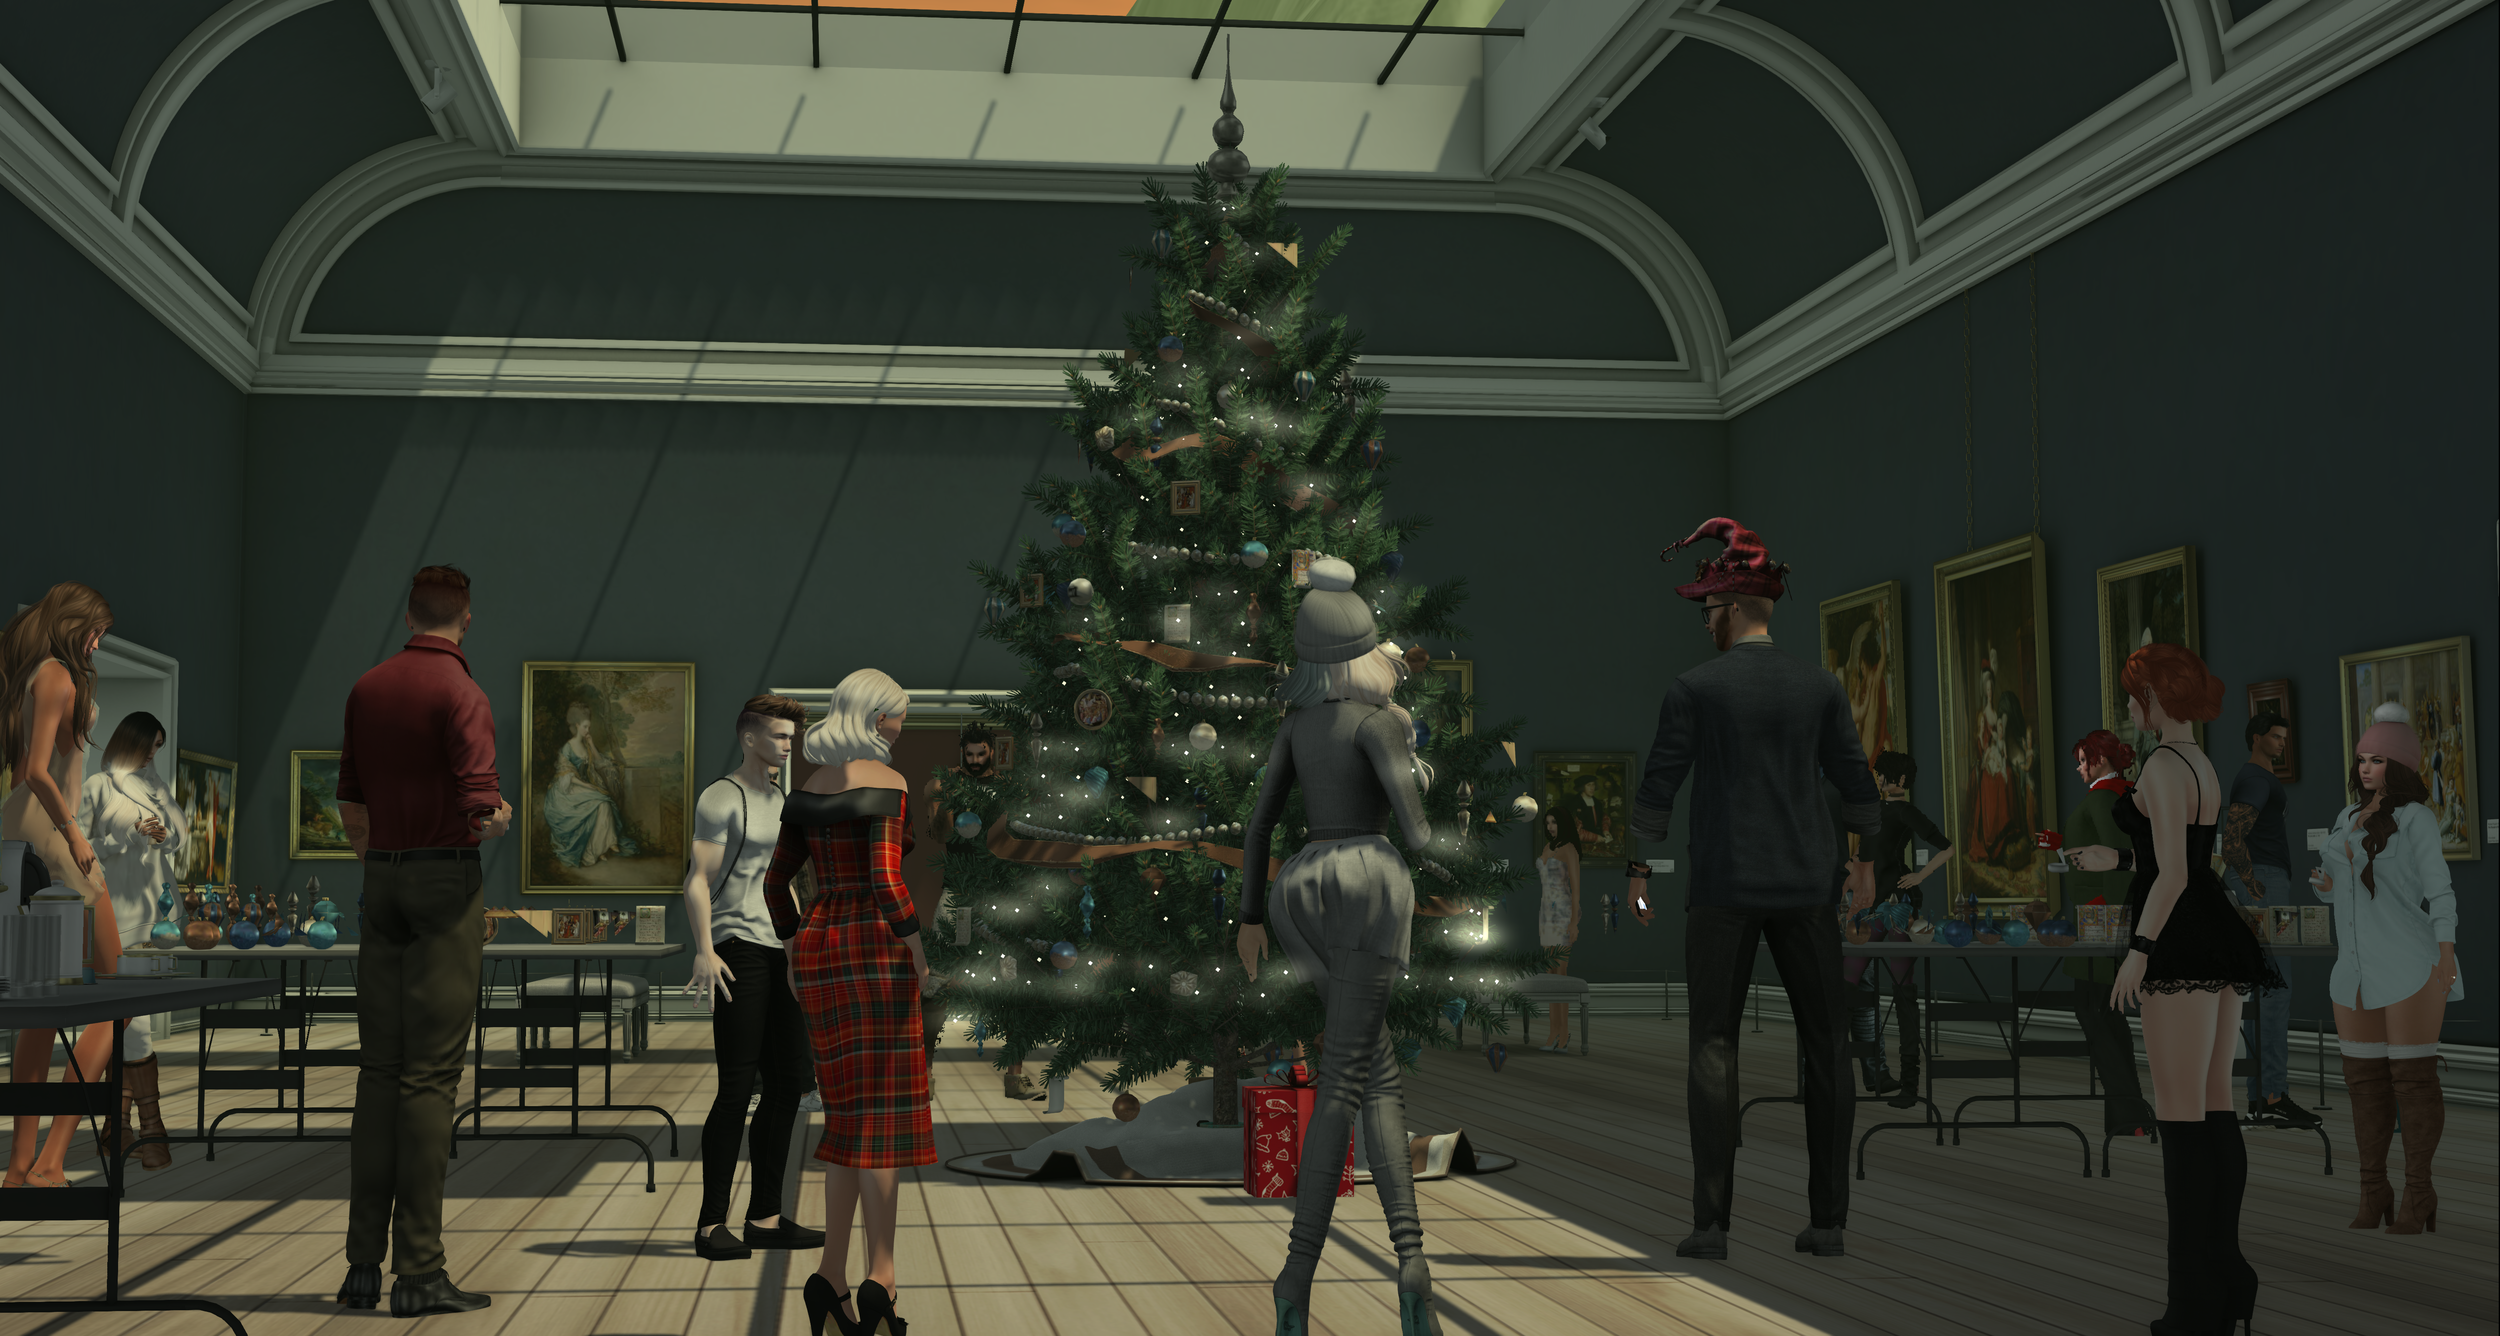 Museum goers help decorate the giant tree, which stands in the middle of The Vordun. Photo courtesy of Anderian Sugarplum.